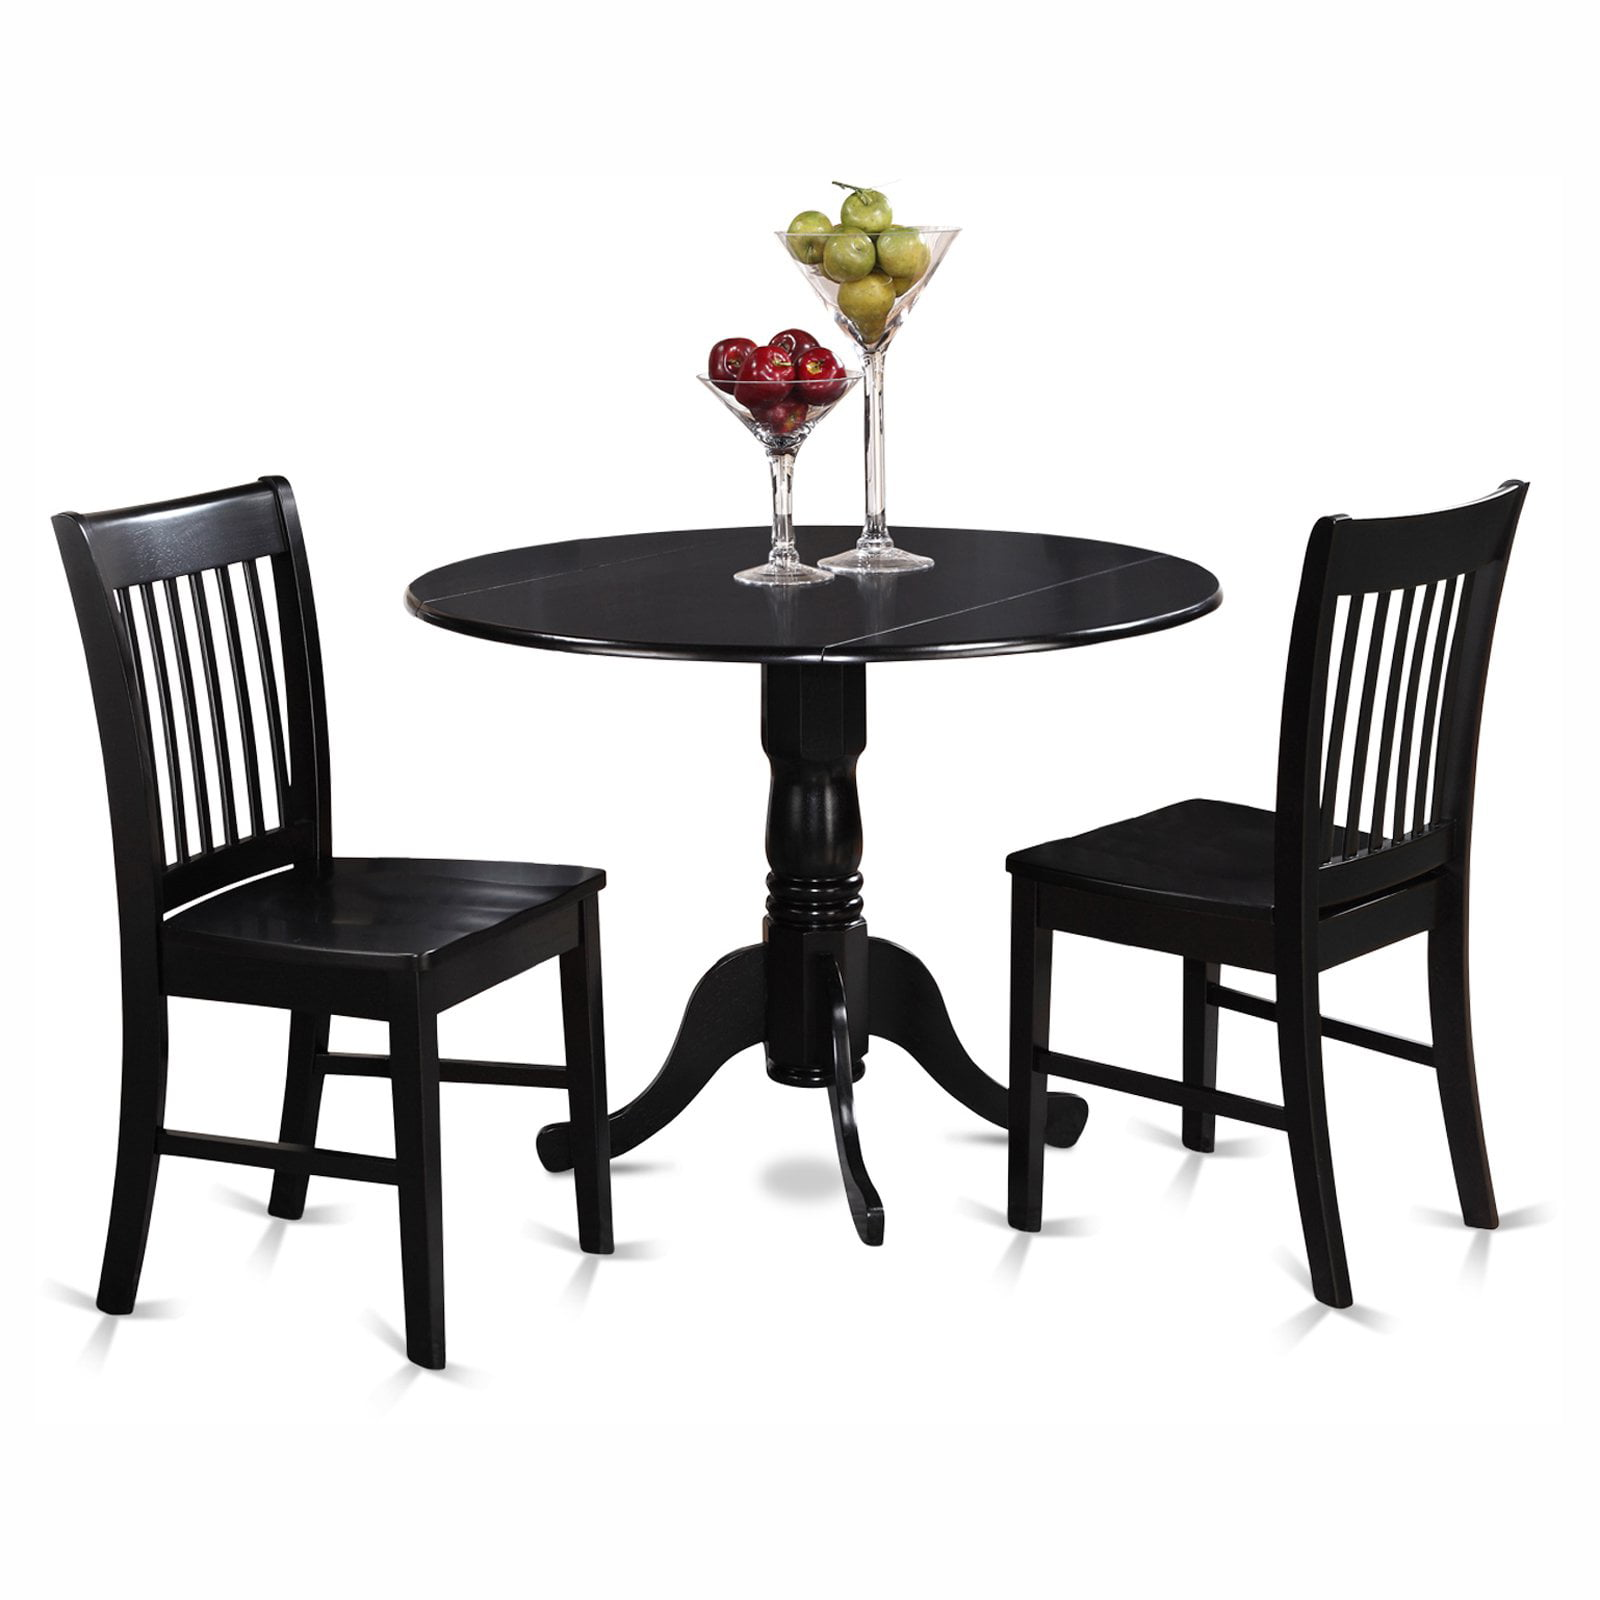 Dublin 3 Piece Round Dining Table Set With Norfolk Wooden Seat Chairs Walmart Com Walmart Com